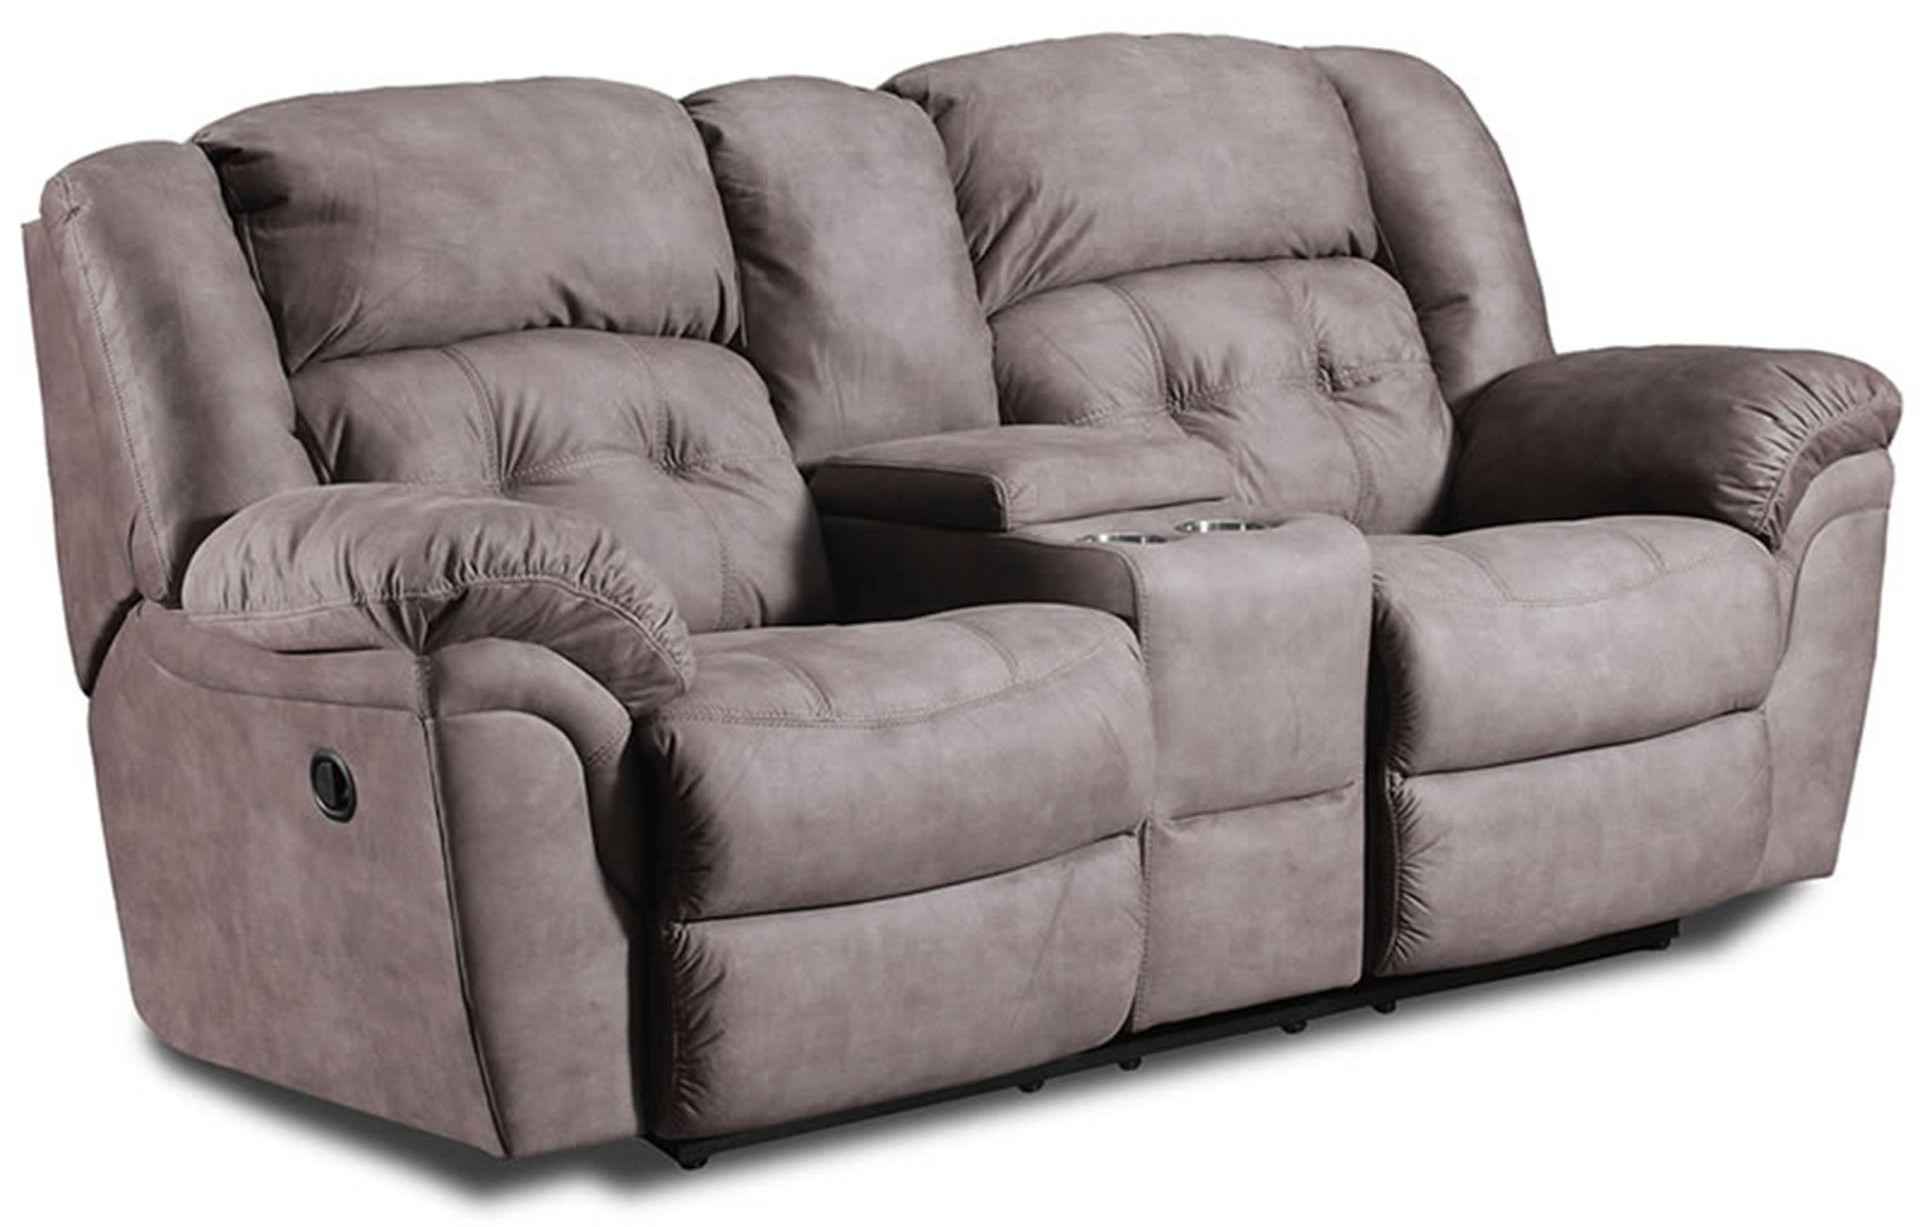 Behold Home 110 Reclining Loveseat with Console - Item Number: 110-227WASH-BEIGE